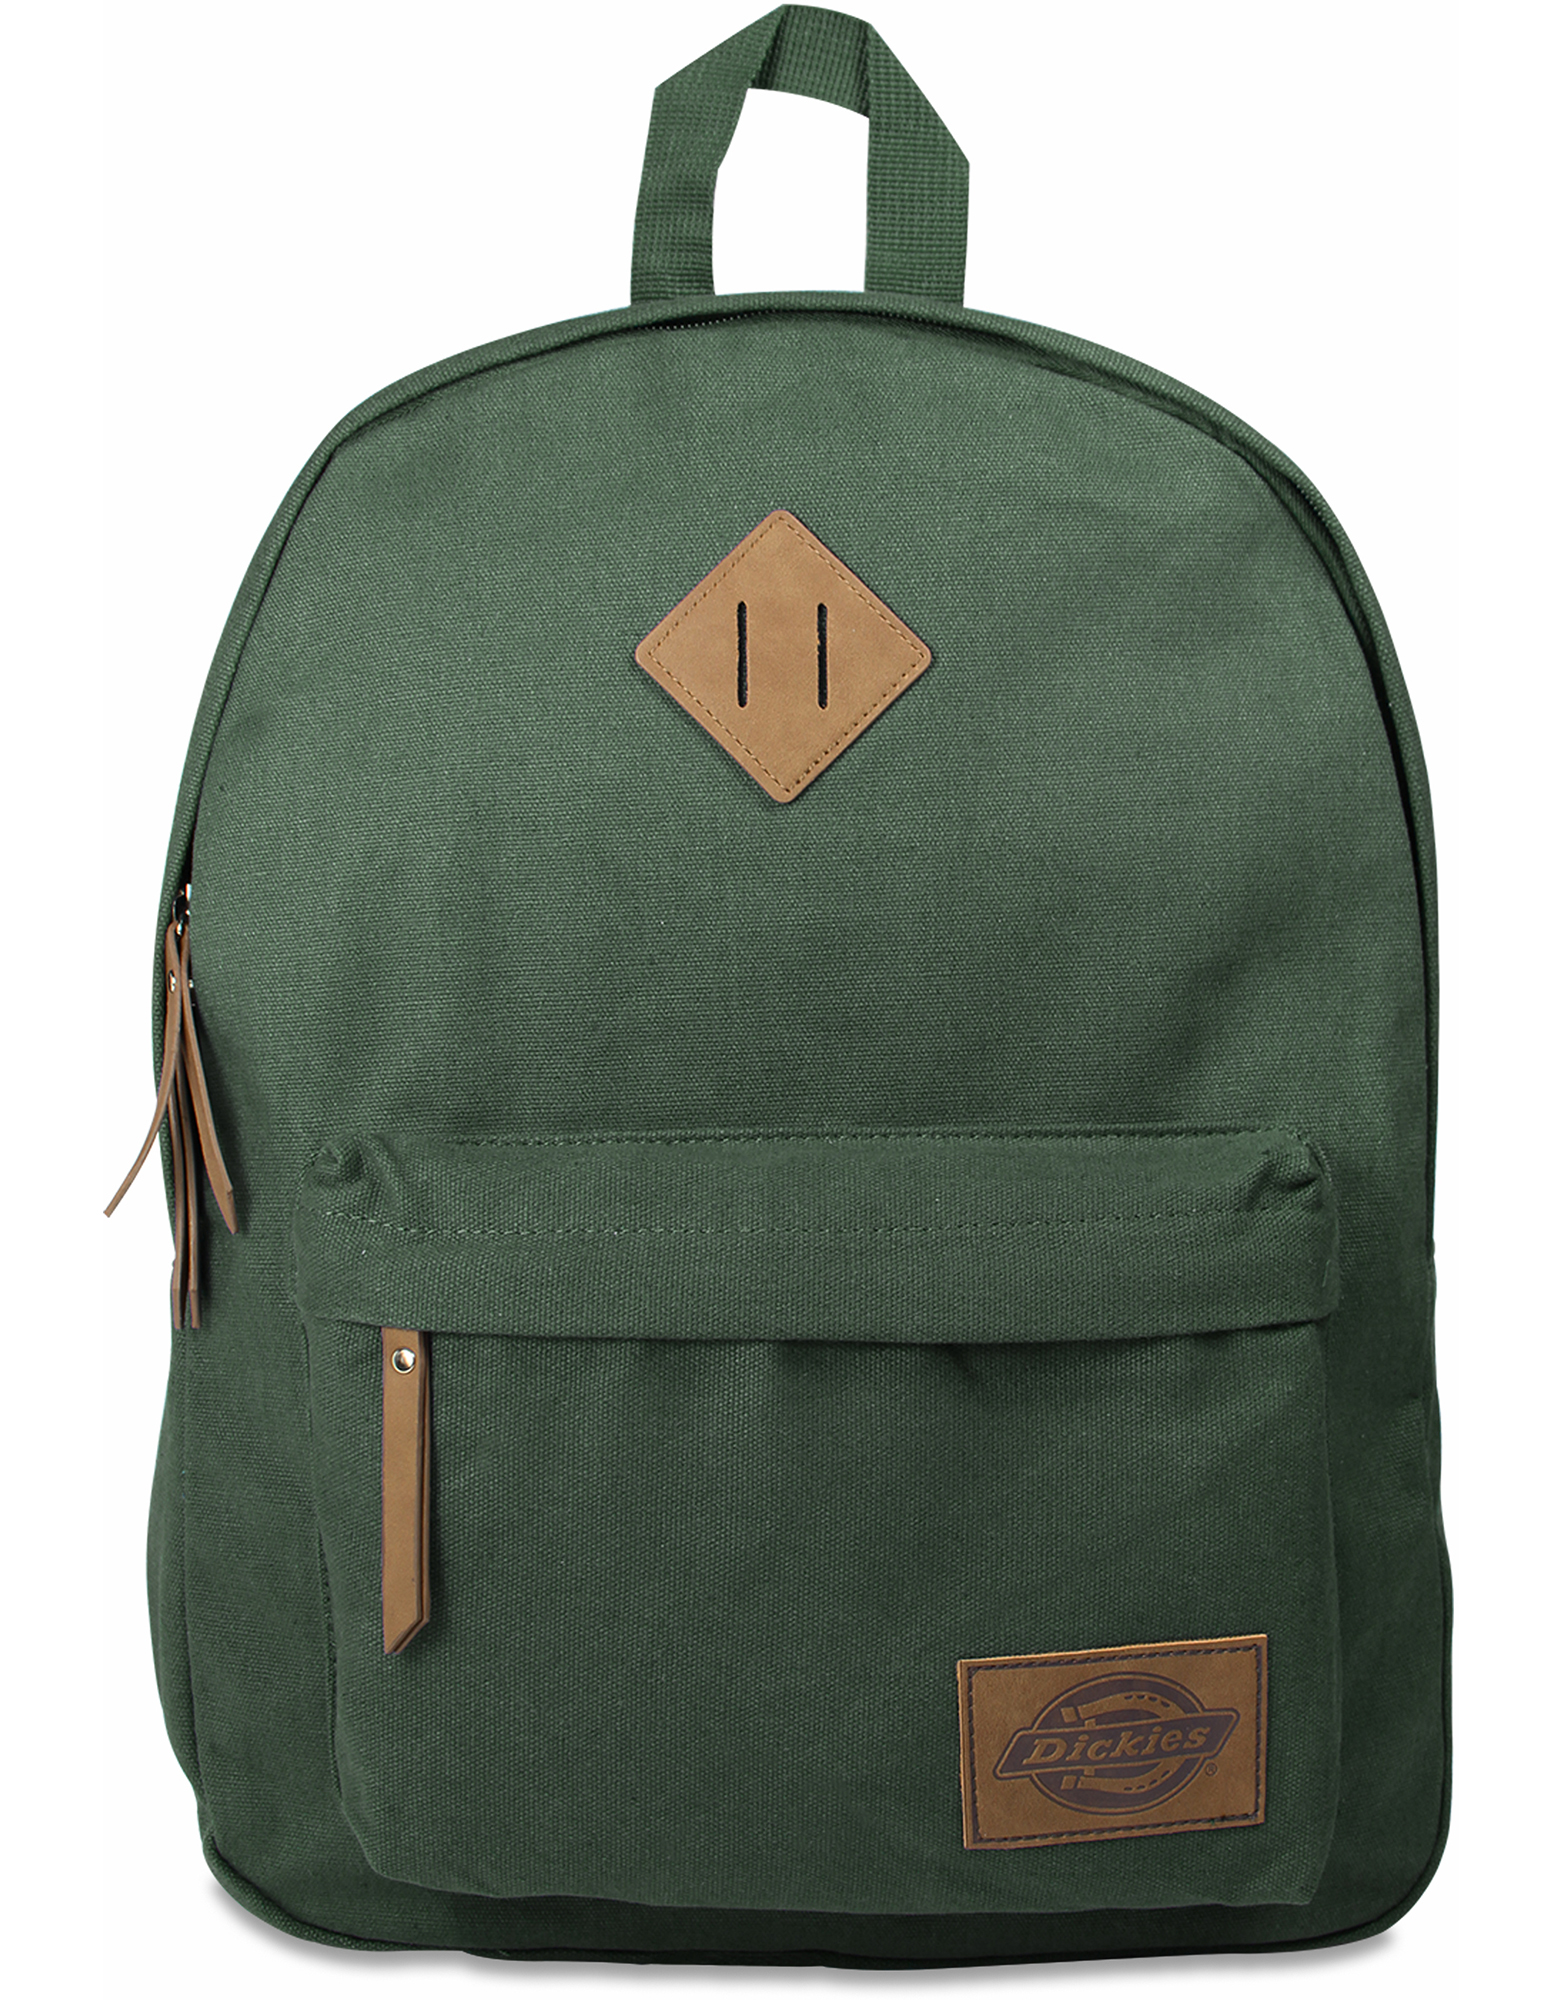 Classic Backpack - FOREST (FT)